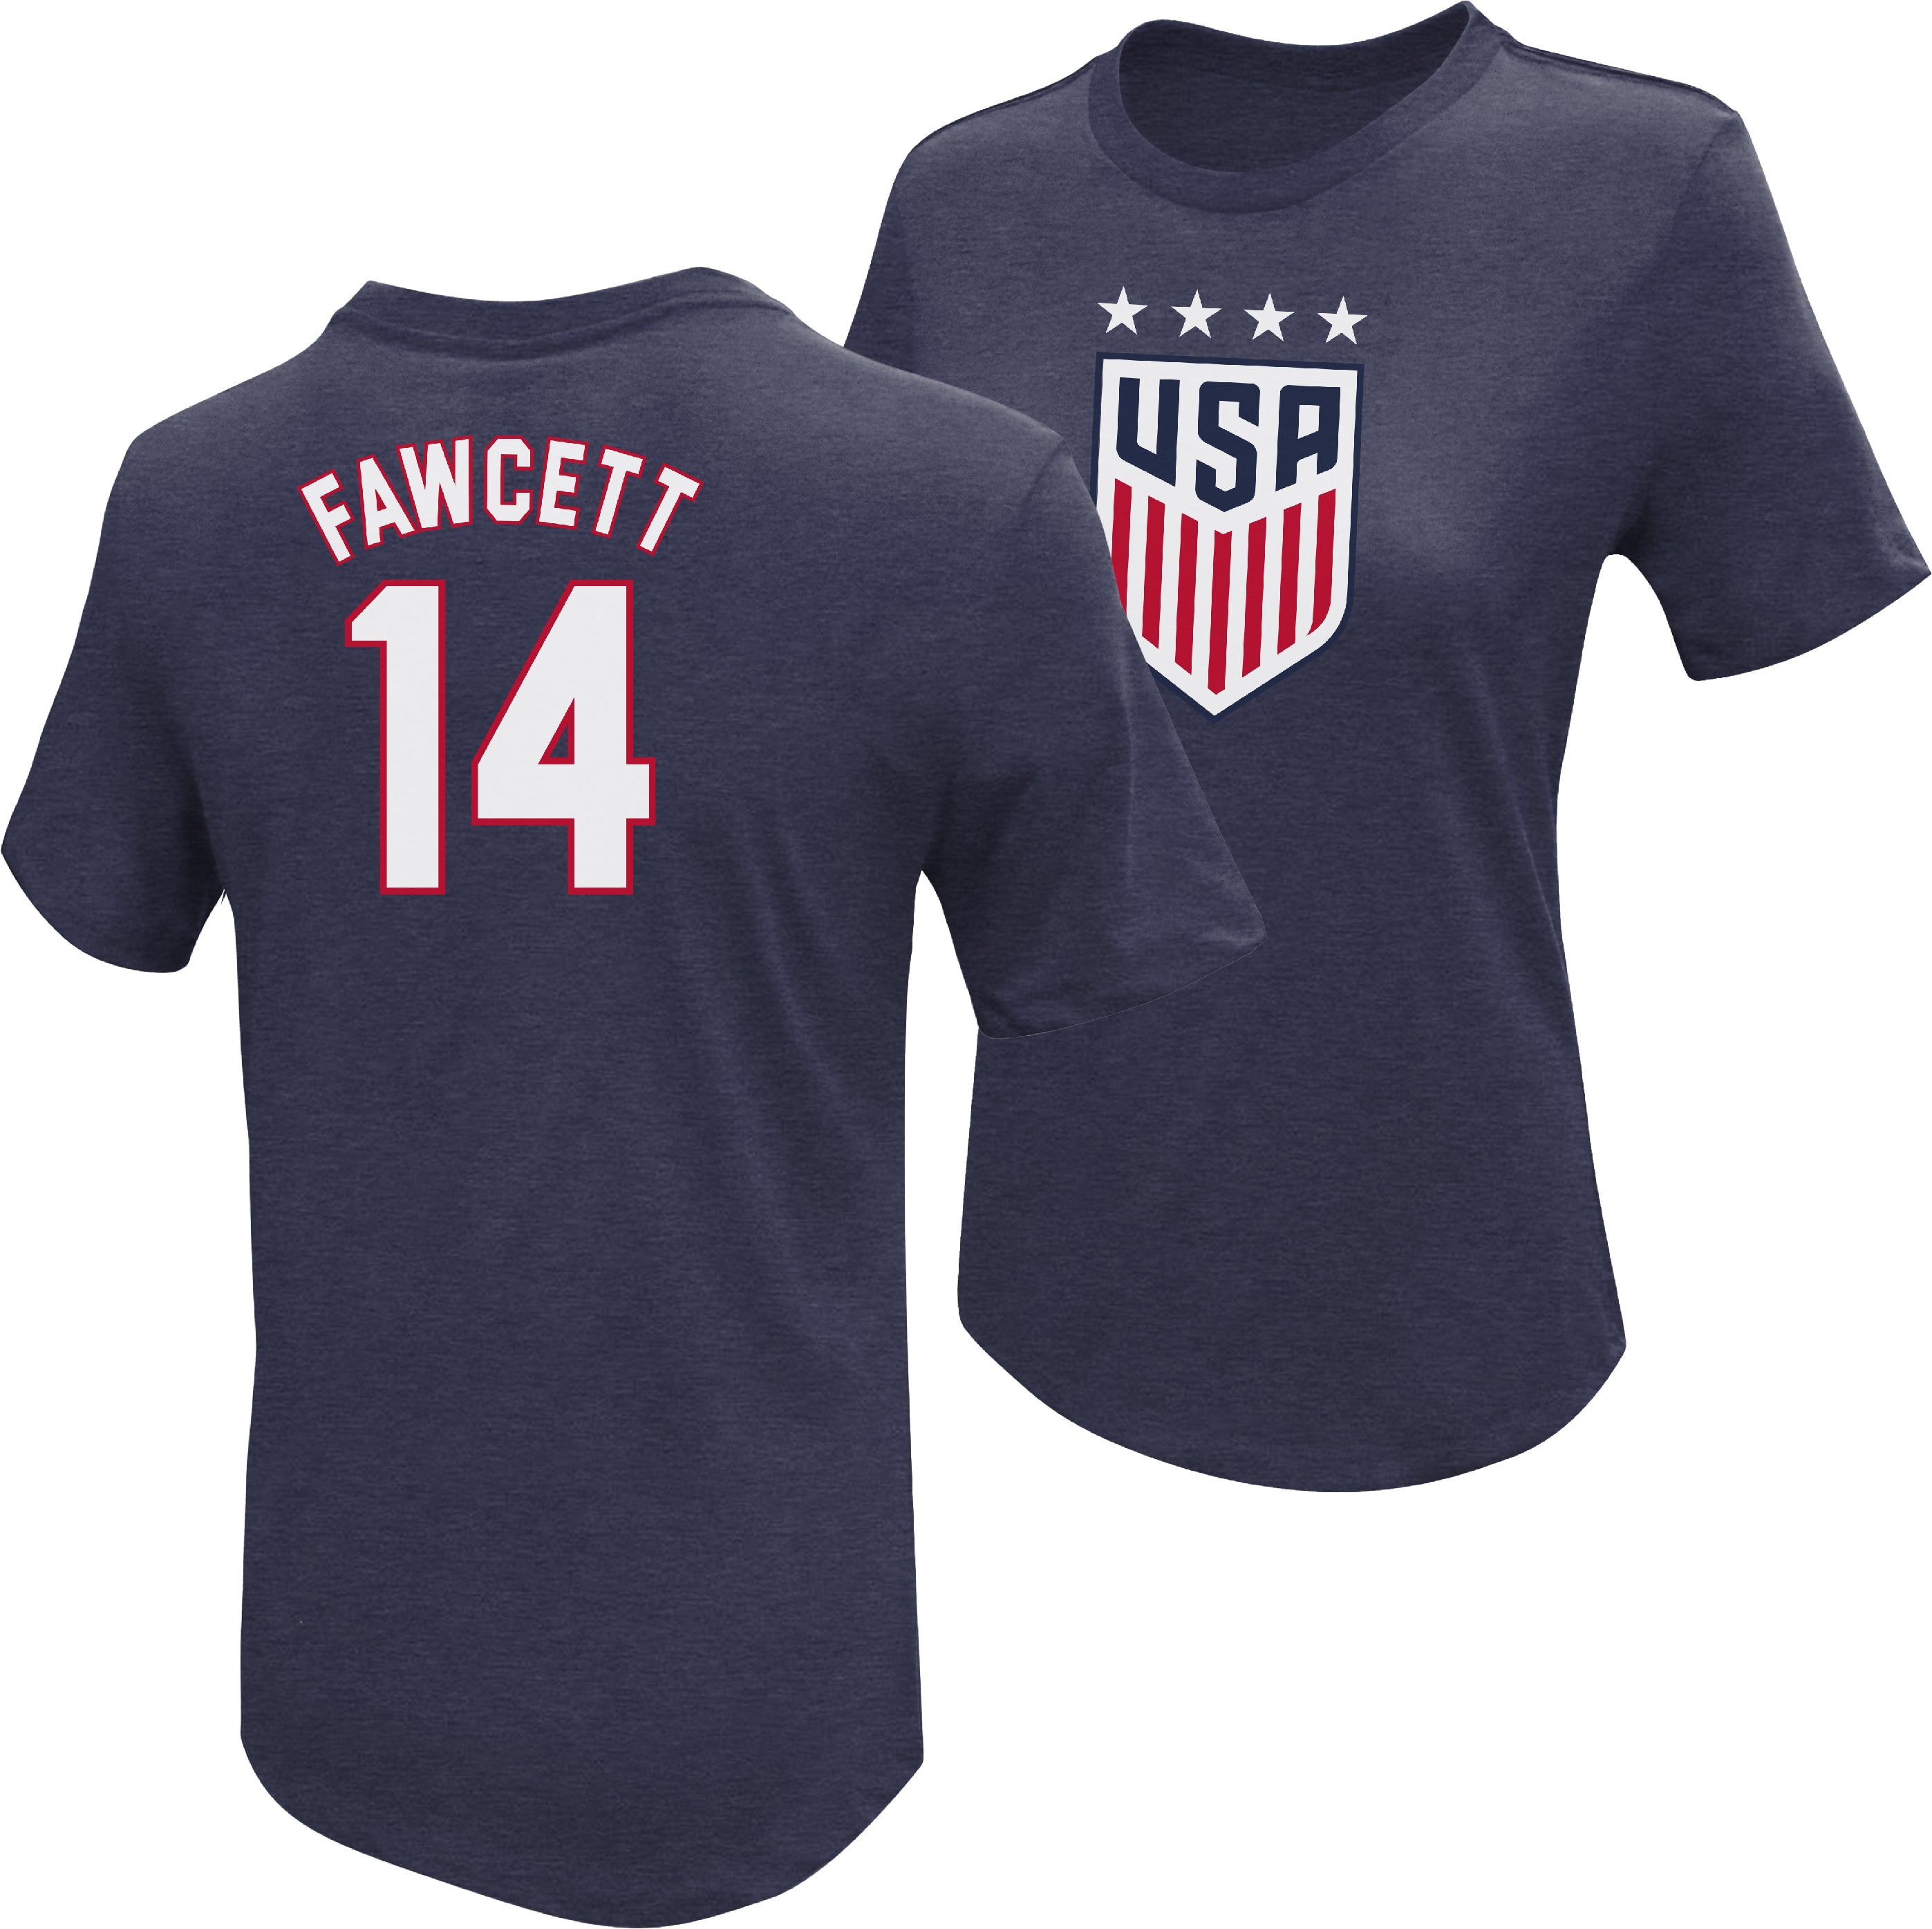 Joy Fawcett 1999 USWNT 4 Star T-Shirt by Icon Sports